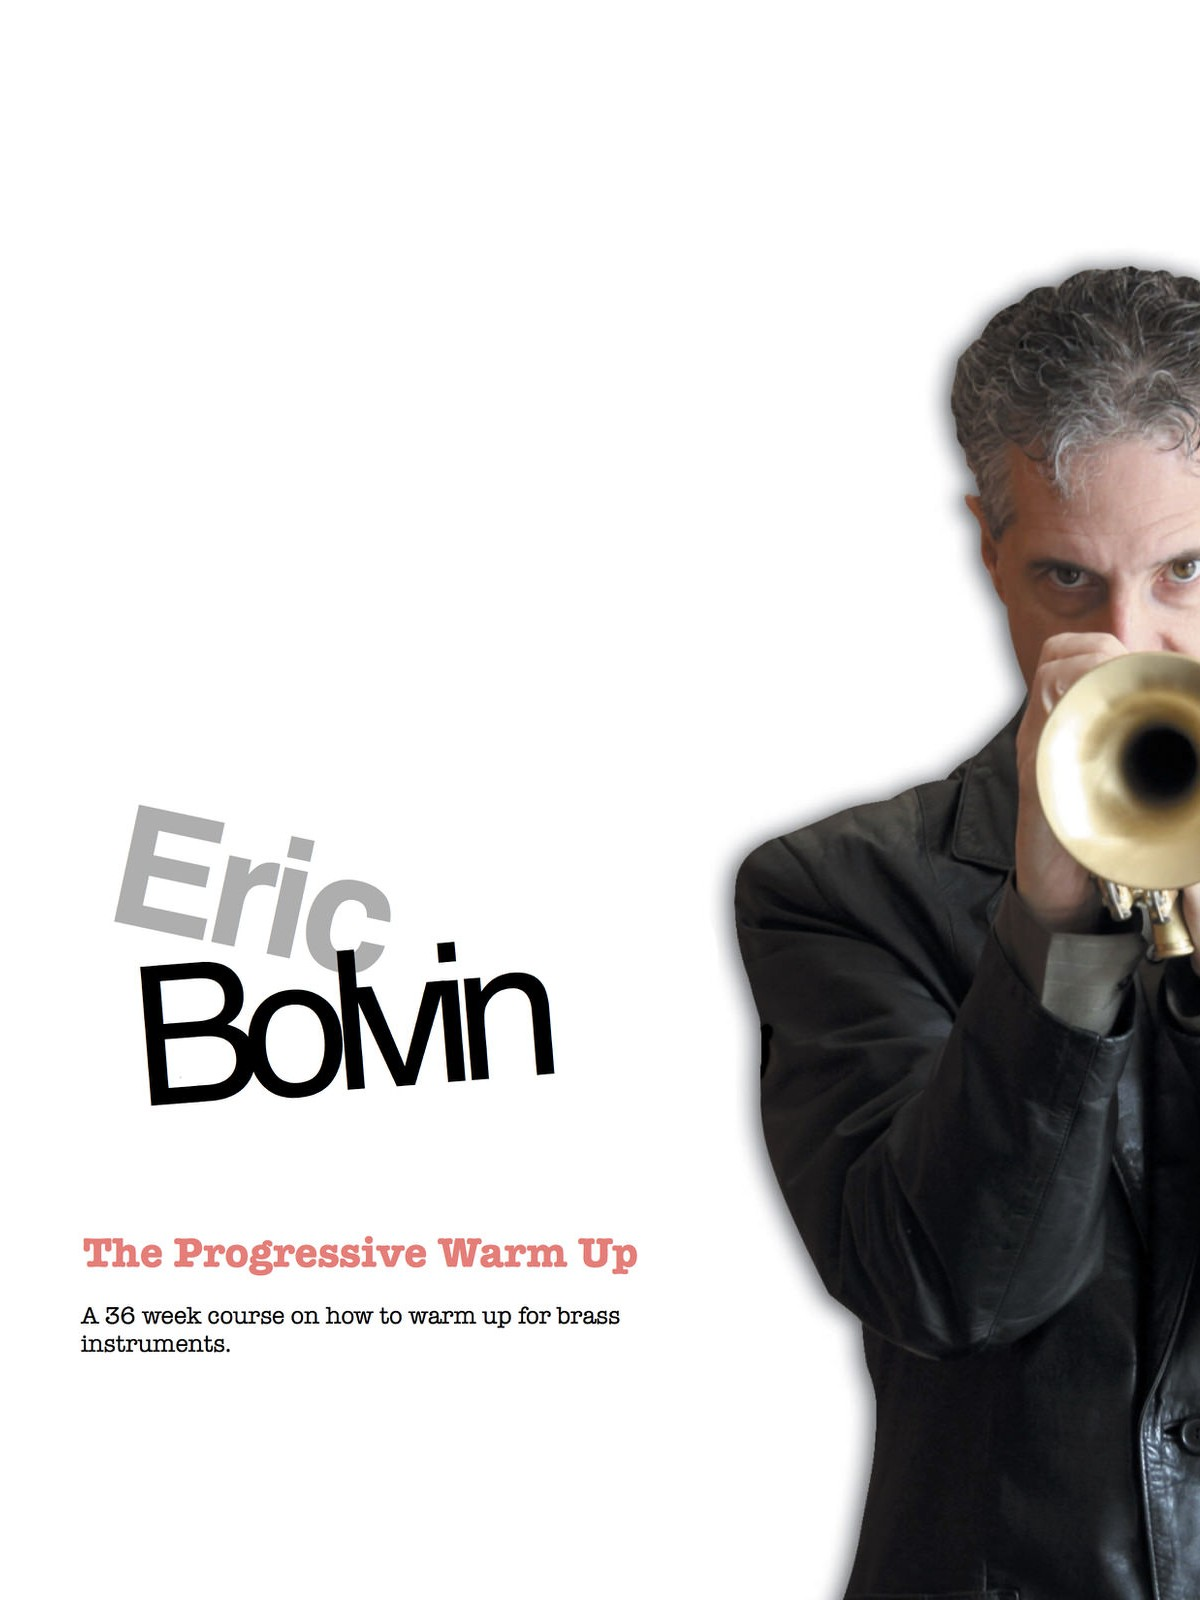 Bolvin, The Progresive Warm Up